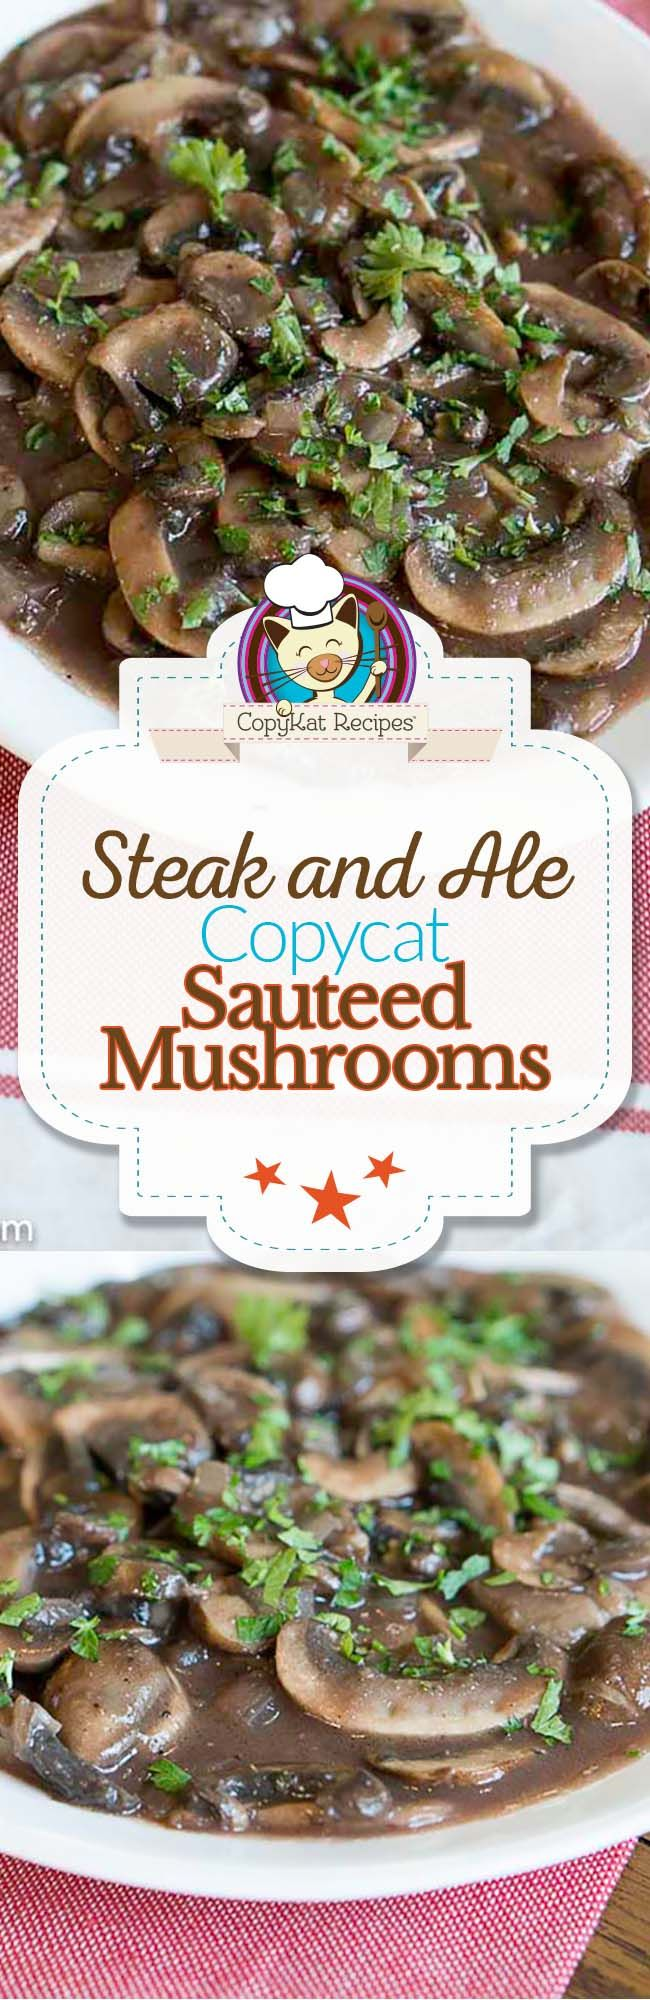 You can recreate Steak and Ale sauteed mushrooms at home with this easy copycat recipe.